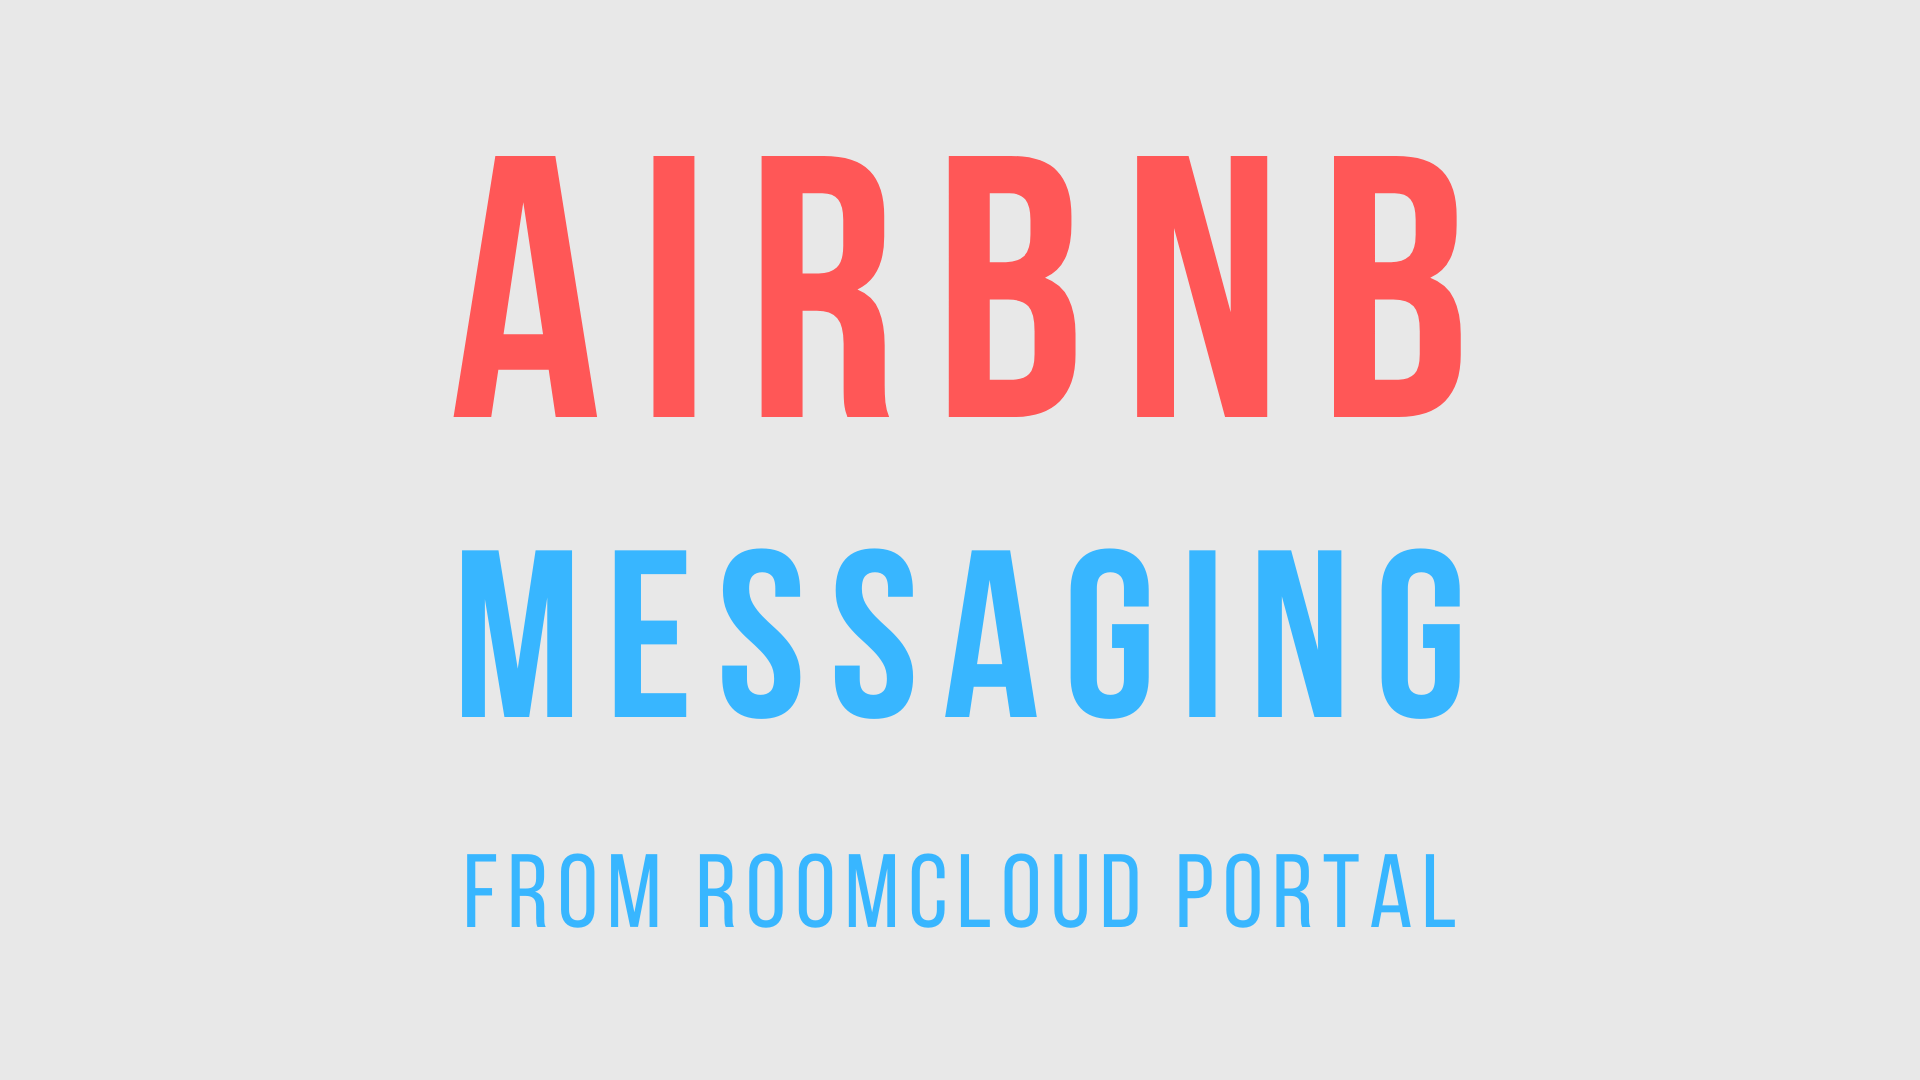 New Messaging features for Airnbnb on RoomCloud